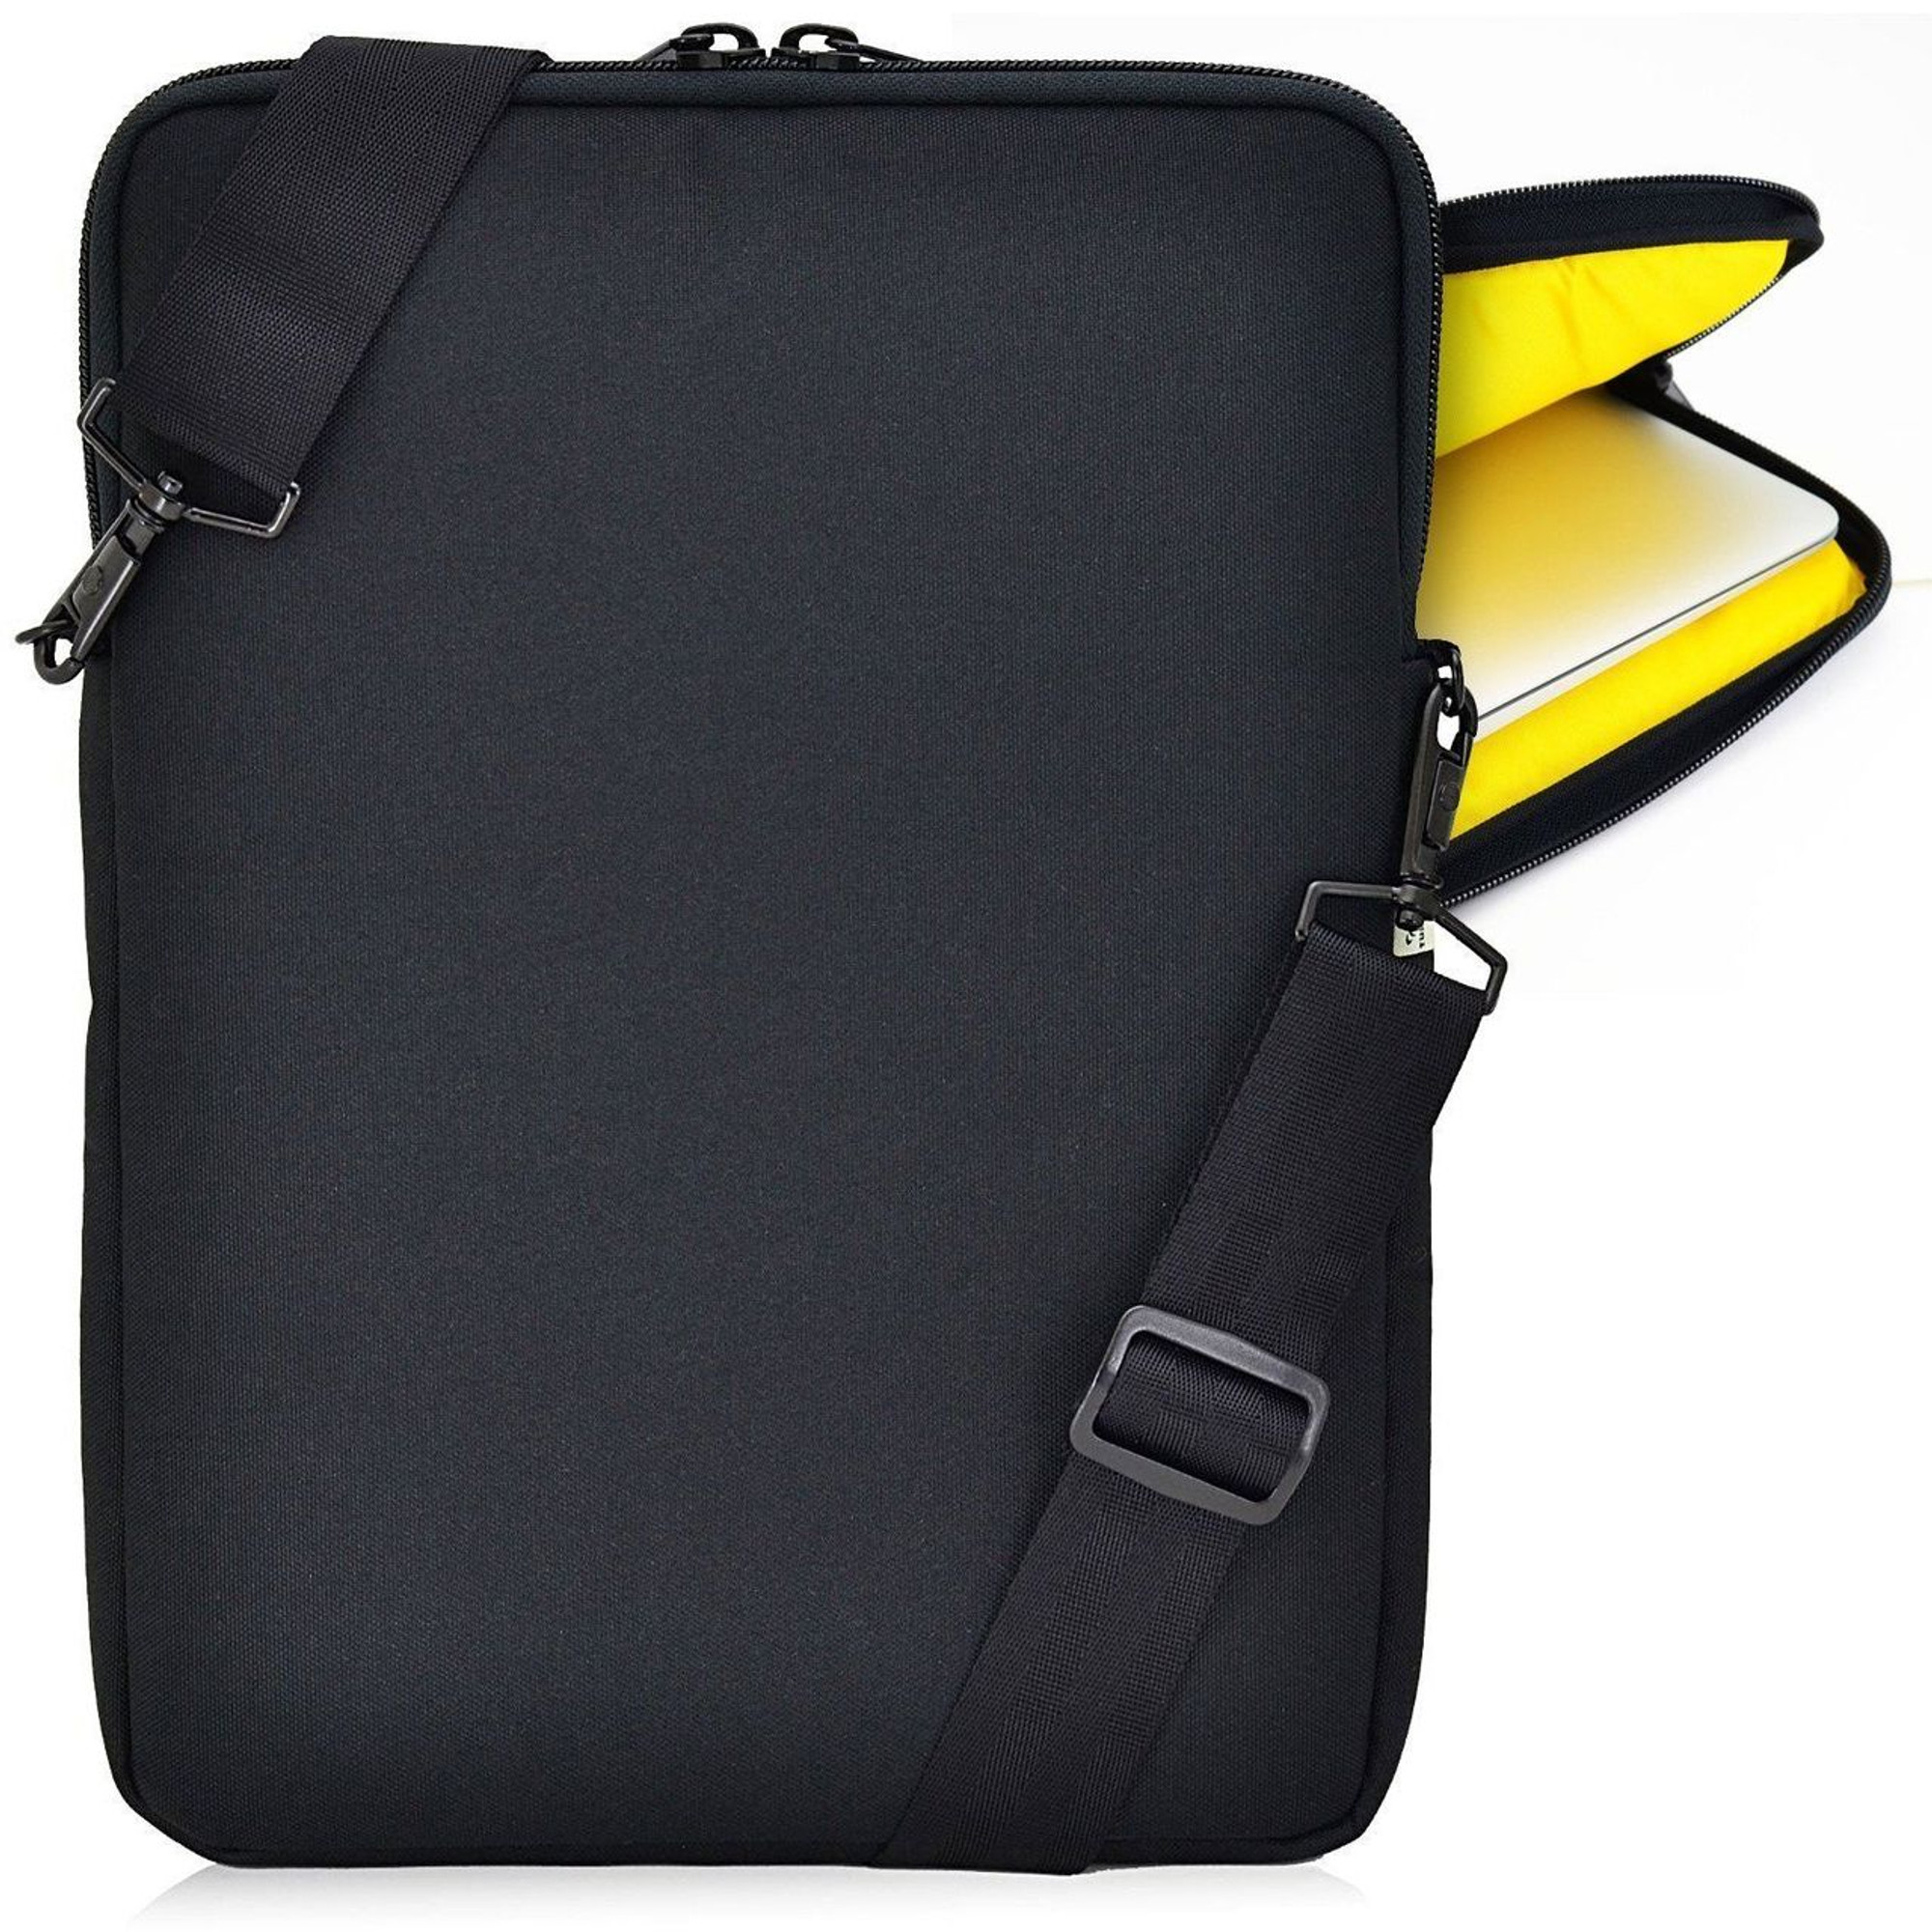 apple 14in macbook laptop padded sleeve bag case with straps yellow turtleback case. Black Bedroom Furniture Sets. Home Design Ideas